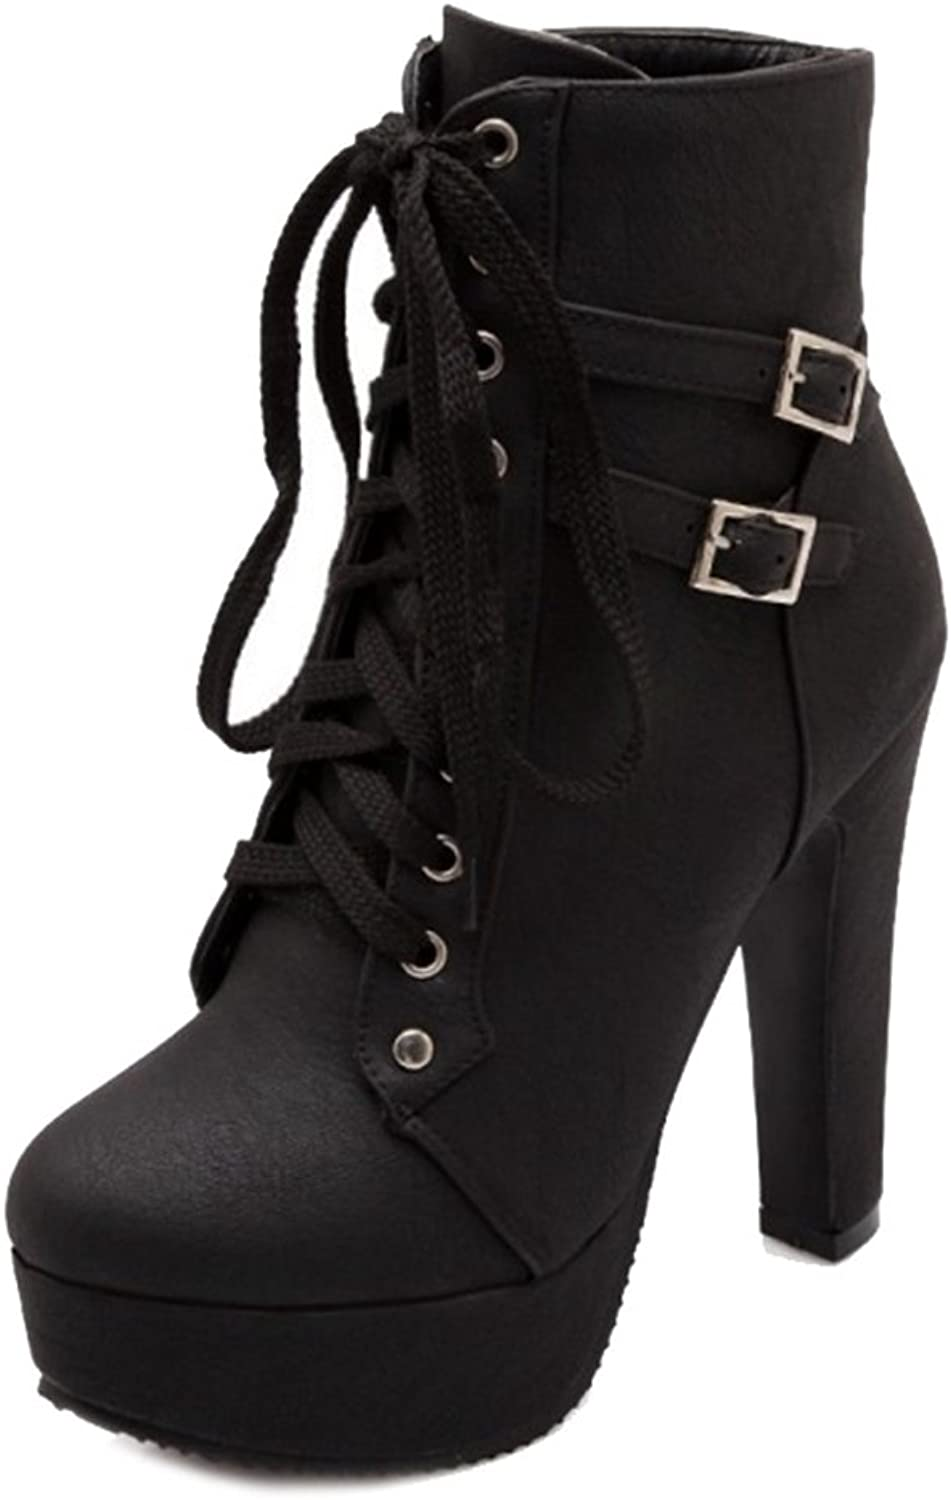 Smilice Large Size & Small Size Women Lace-up Platform Boots High Block Heel Ankle Booties Black